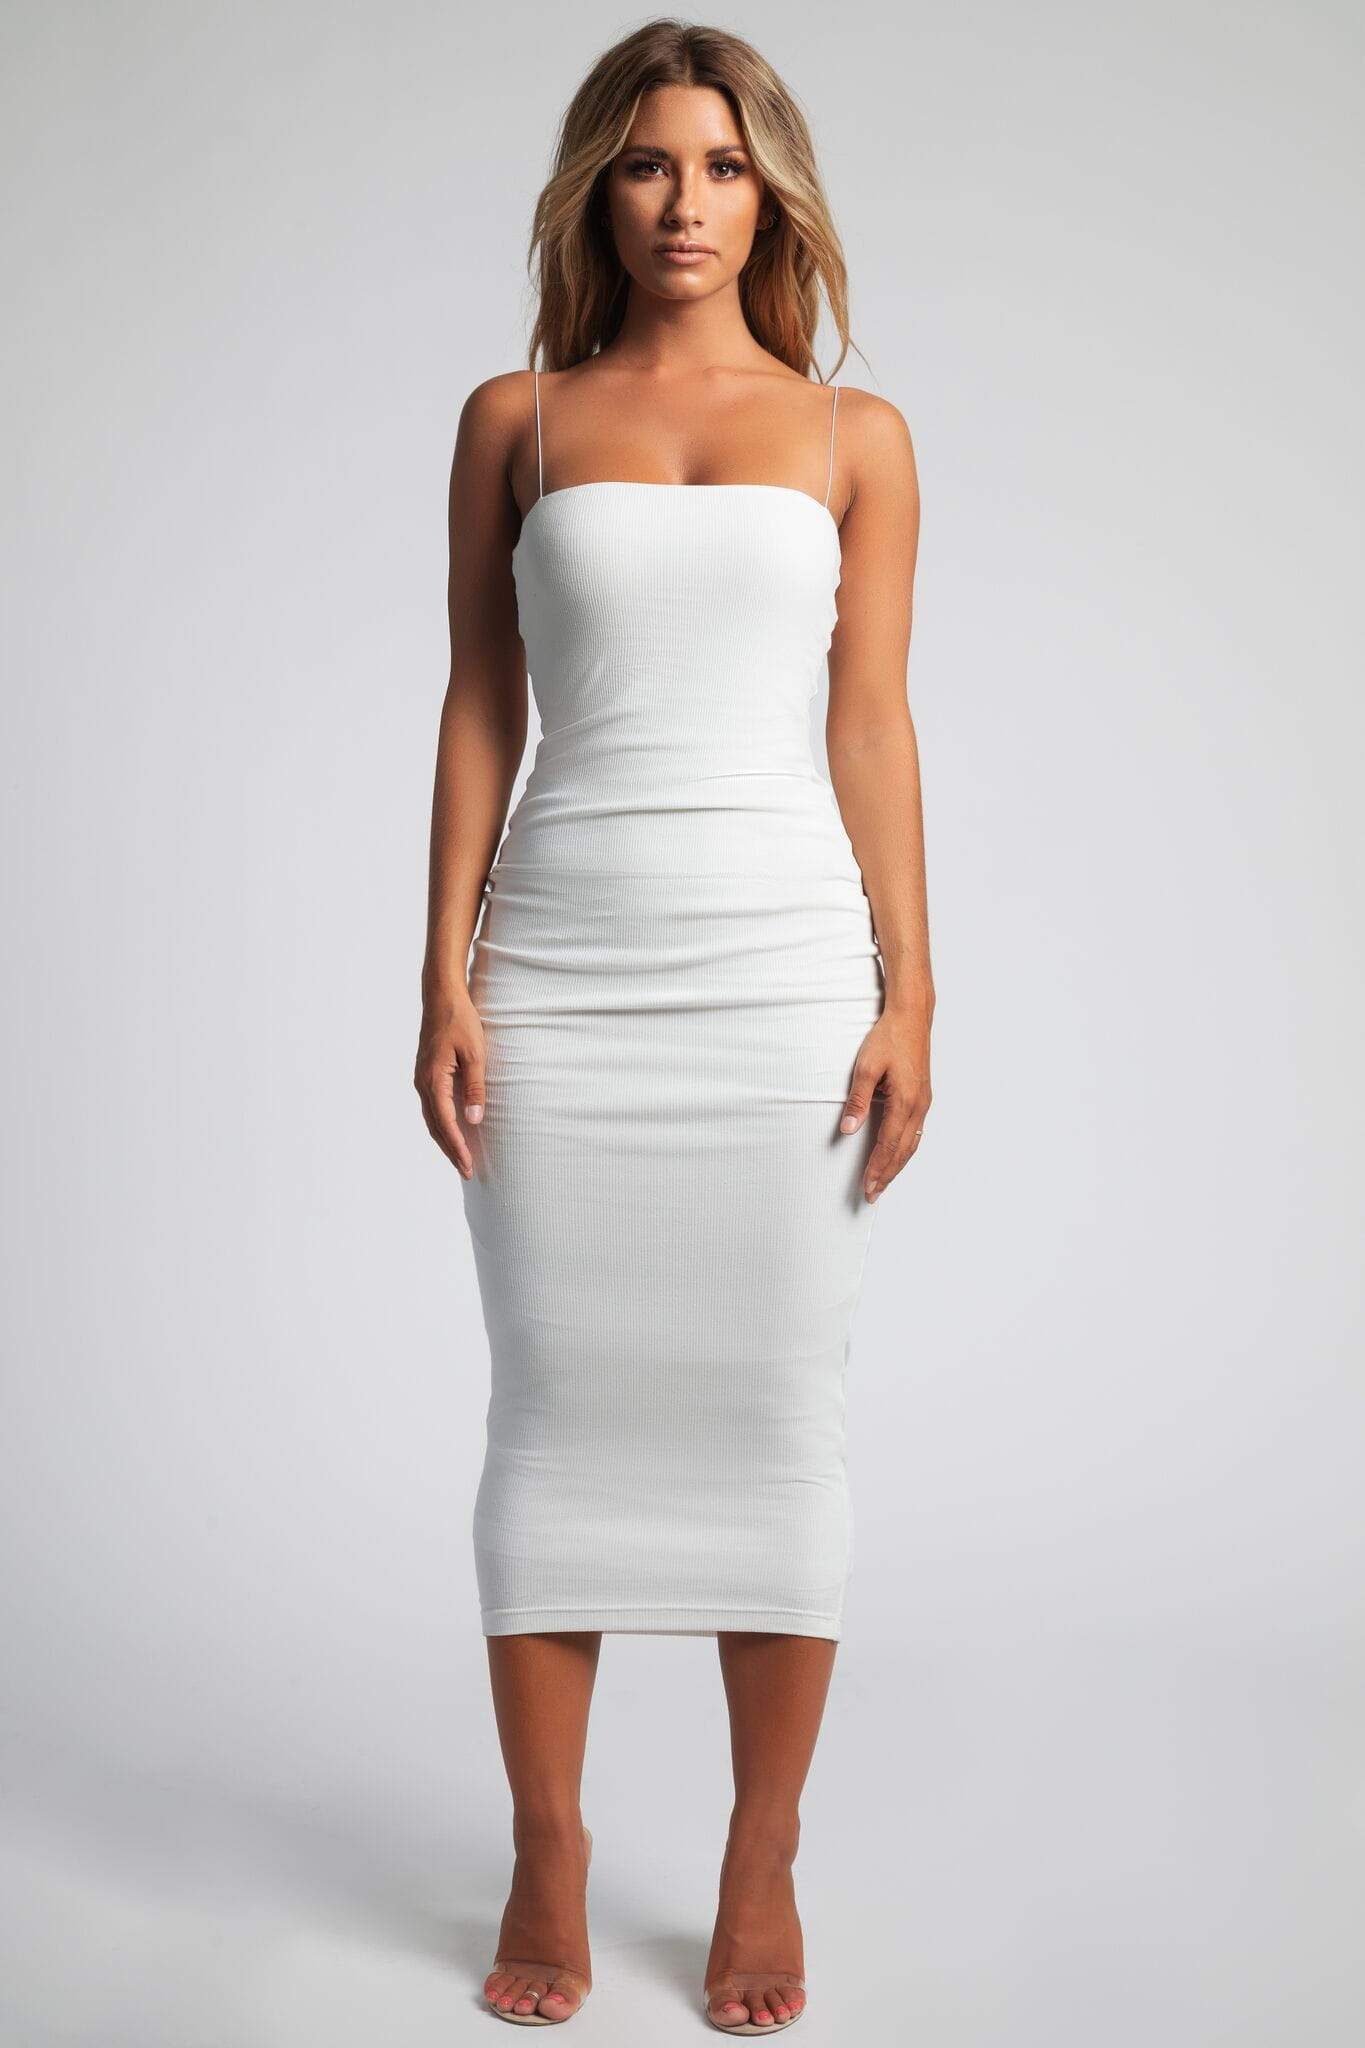 c3b8304262 Jalia Thin Strap Ribbed Maxi Dress - White - MESHKI